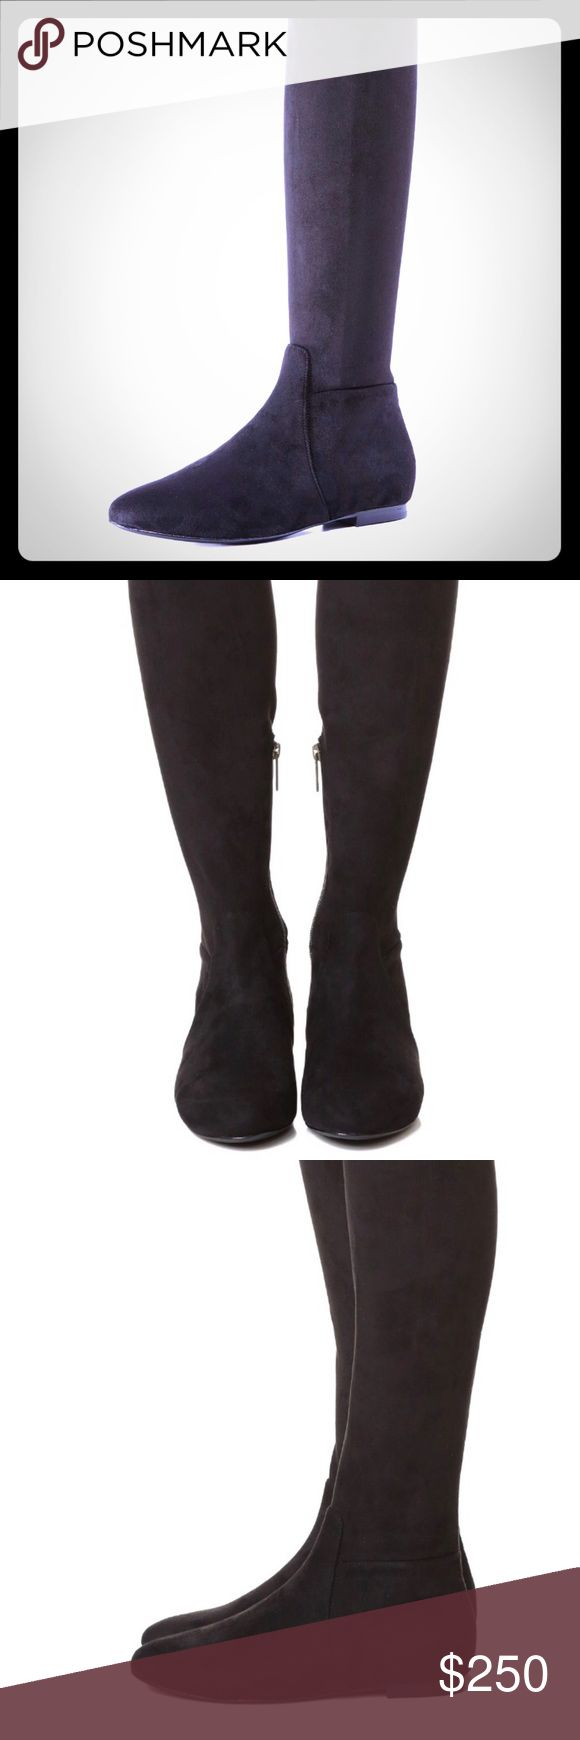 Joie 'Hayleigh' Boots in Black 8.5 Brand New, never worn sophisticated over-the-knee style in soft stretch suede. Inside side zip. Low, stacked heel and leather sole. Joie Shoes Over the Knee Boots